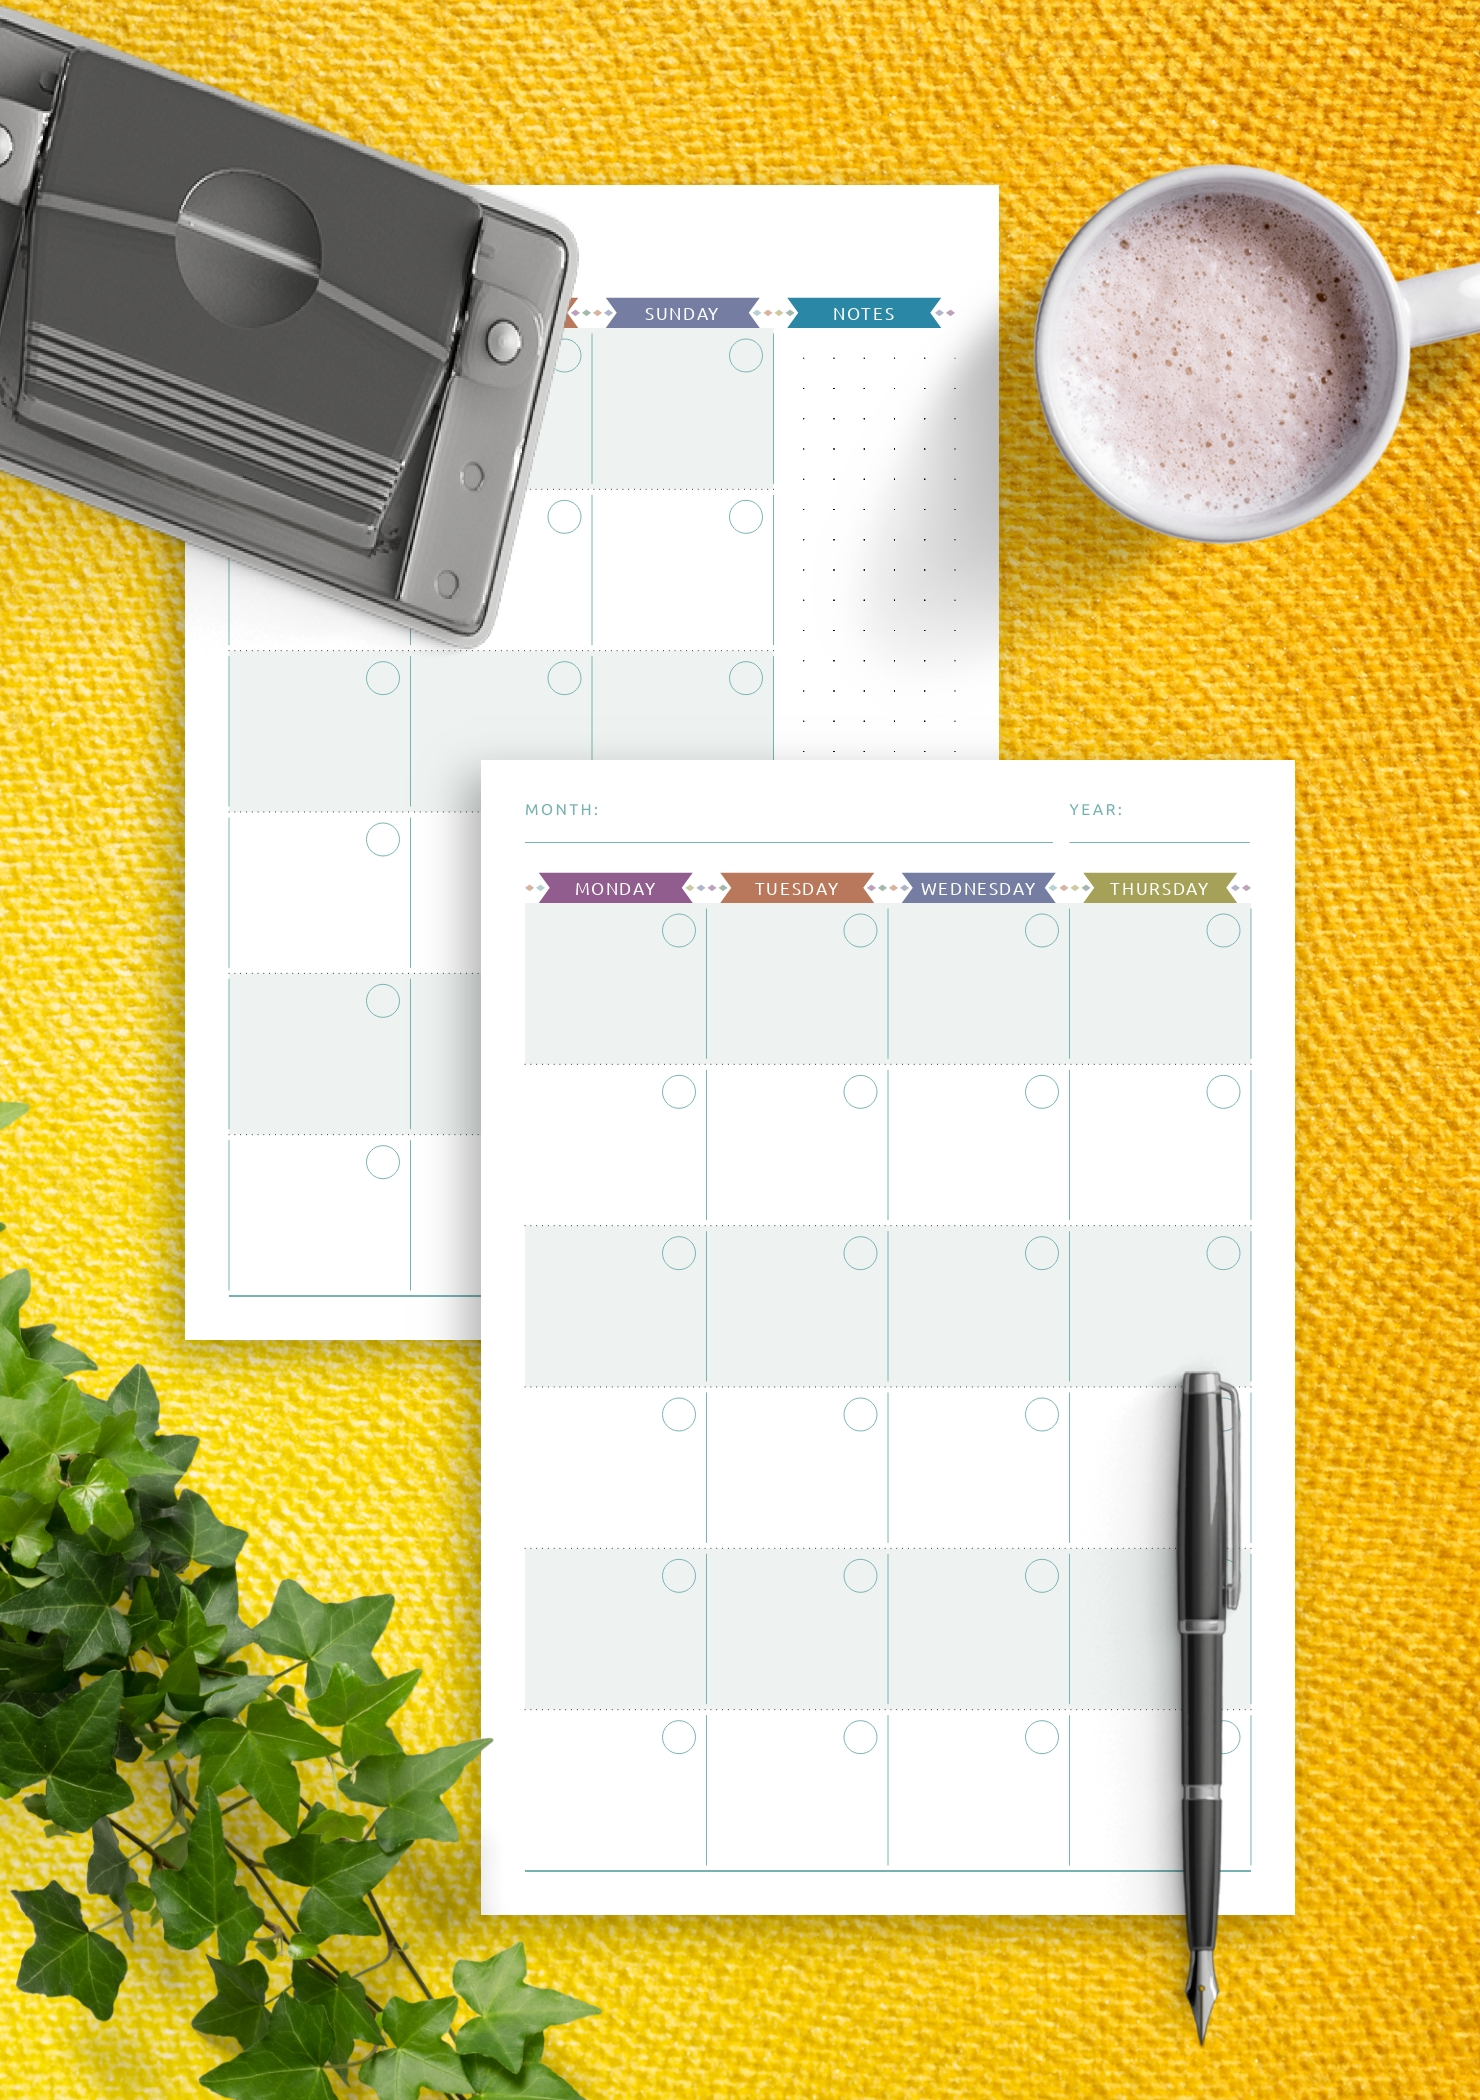 Download Printable Monthly Calendar Planner Undated - Casual Style Pdf